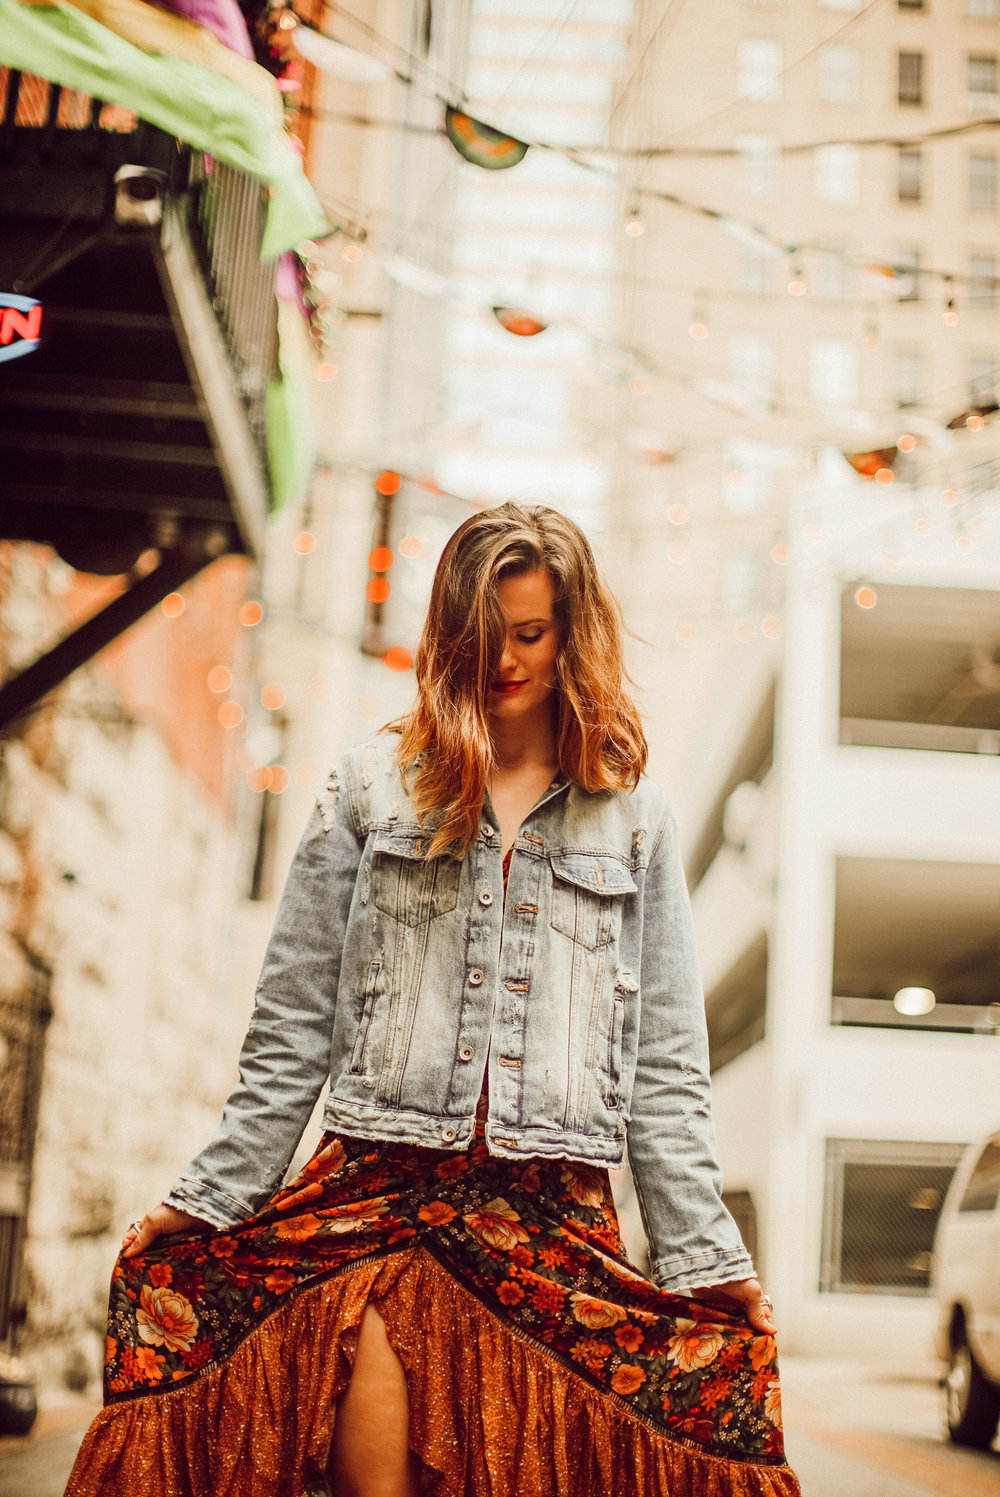 Spring Style // Bohemian Fashion // Lifestyle // 5 Tips for Spring Style // Free People // Blogger // Outfits